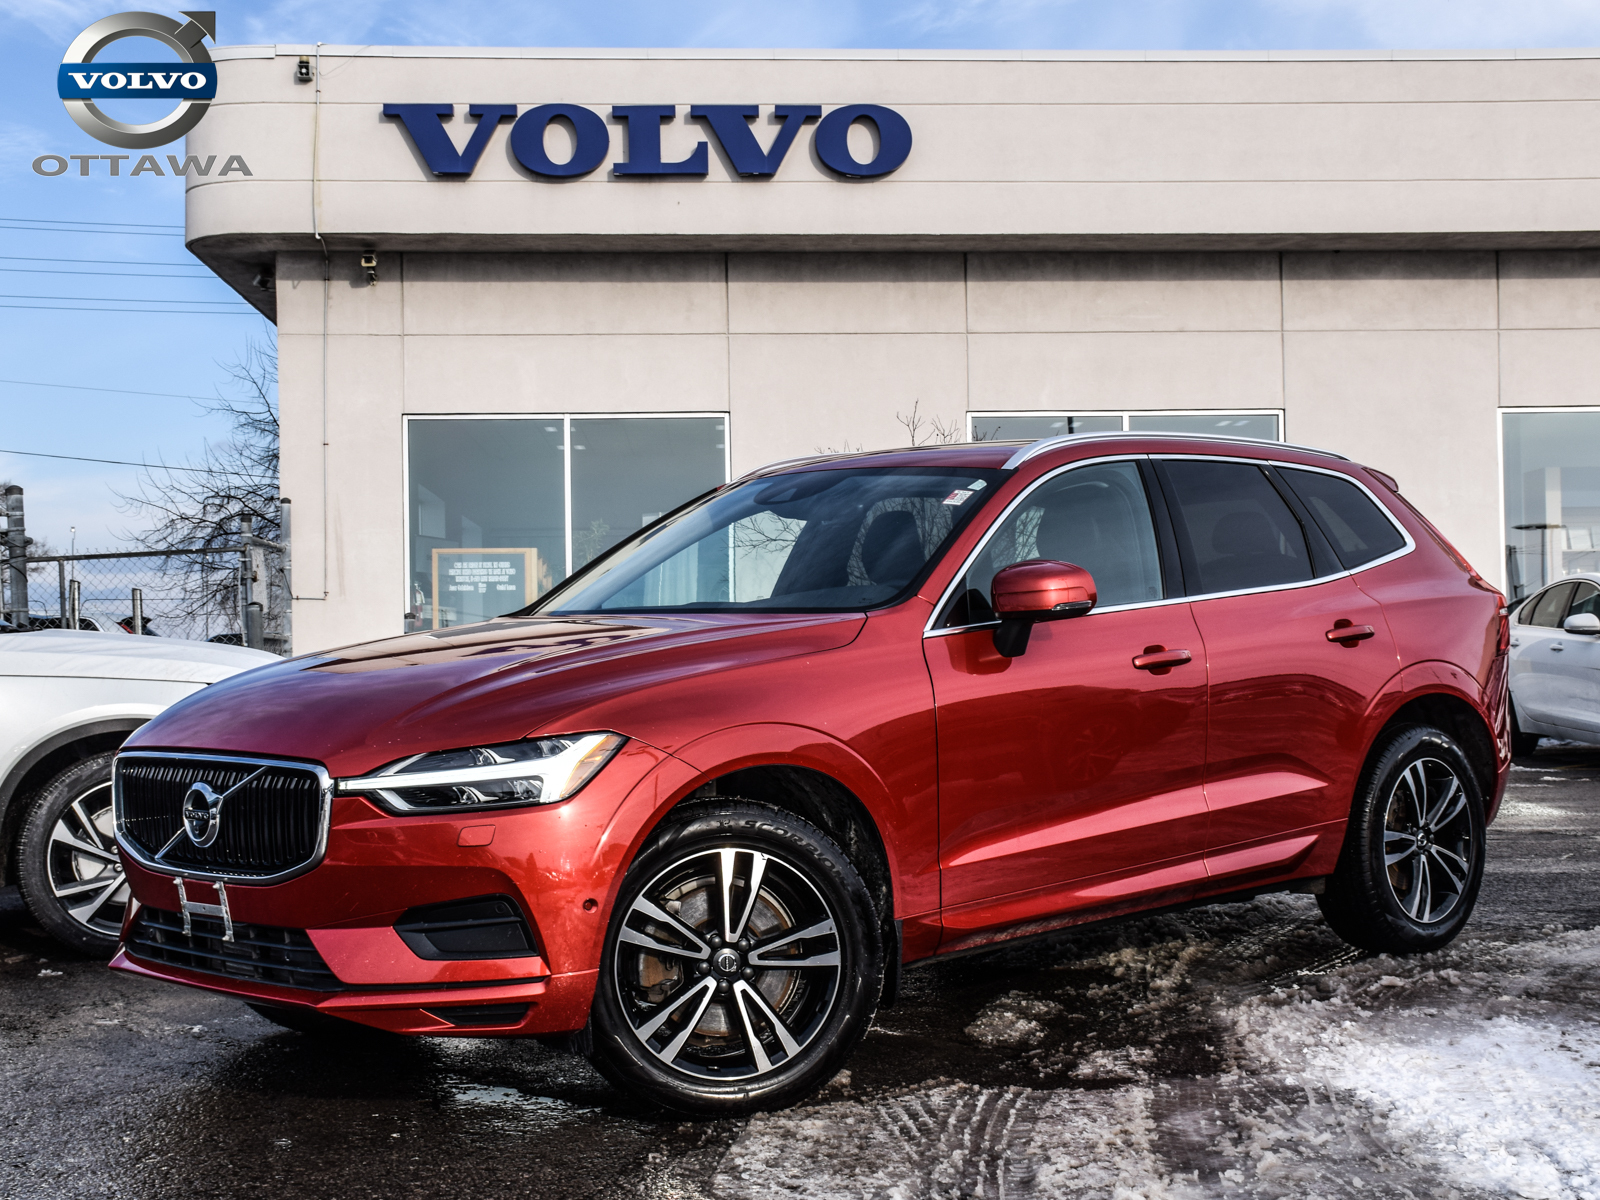 Pre-Owned 2018 Volvo XC60 T6 AWD Momentum